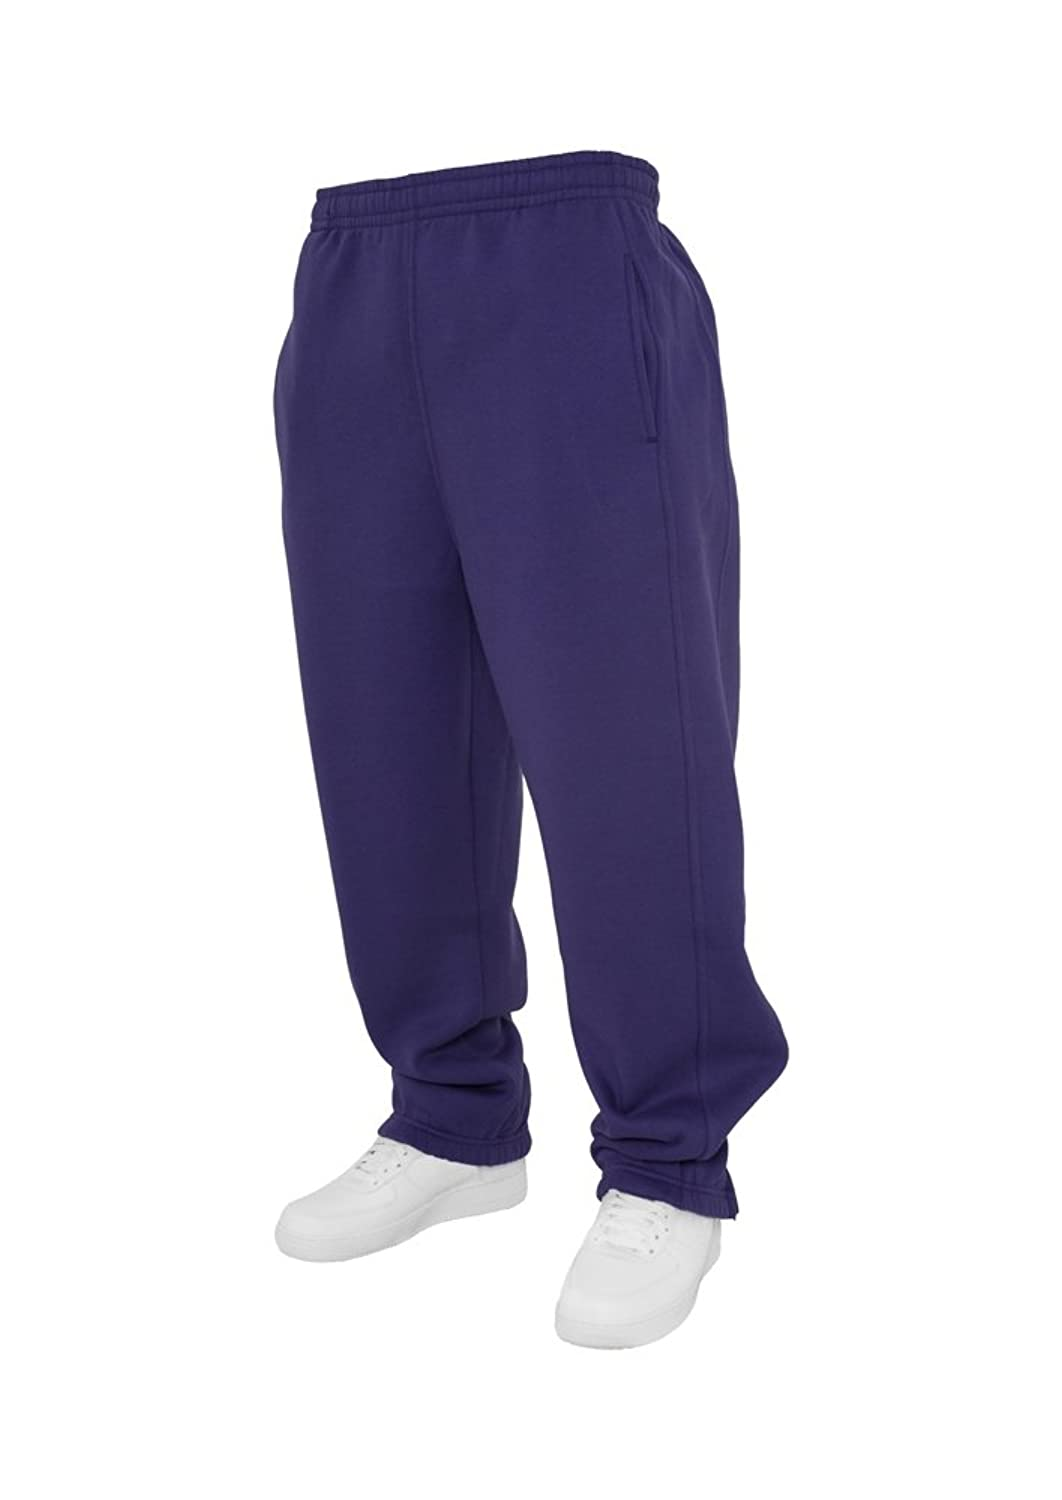 Urban Classics Men's Relaxed Trousers Grey Grey One Size - Purple - XX-Large